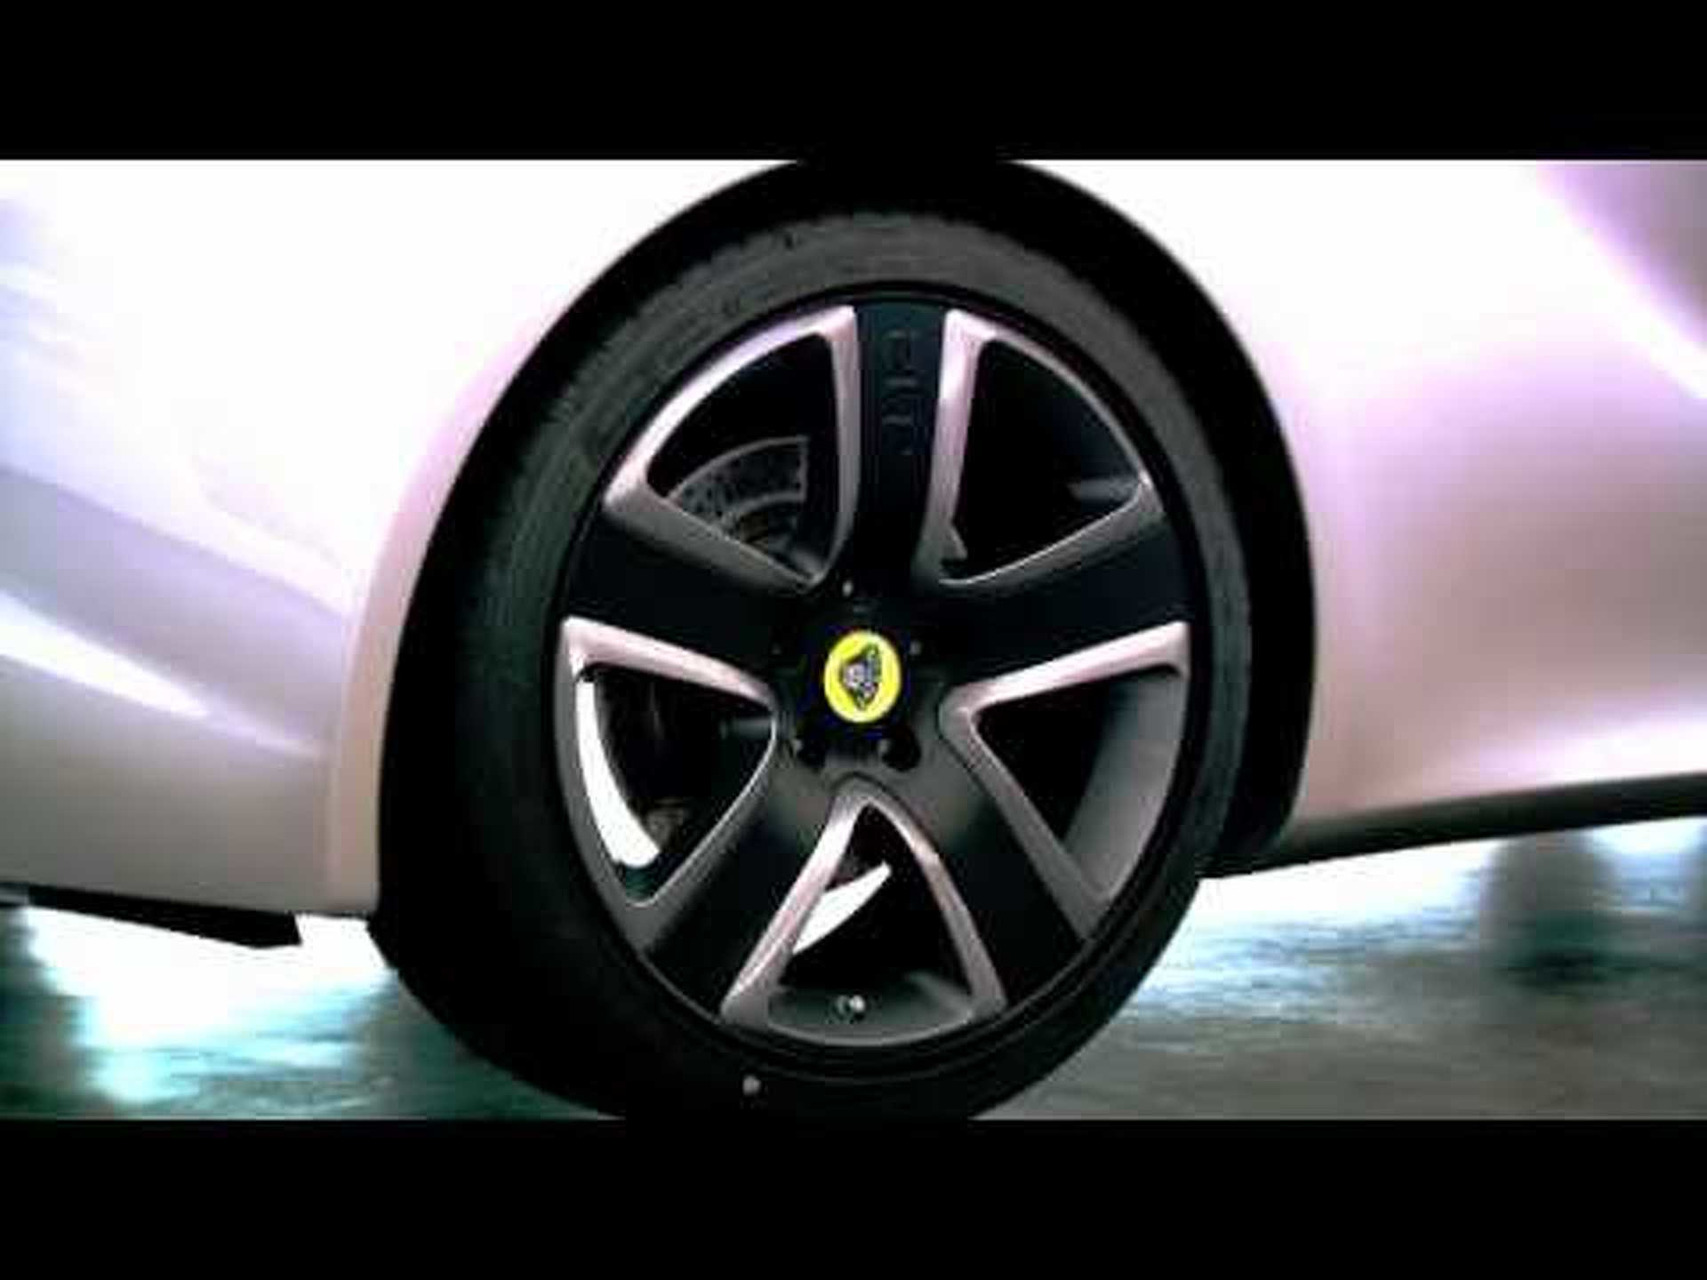 2010 Lotus Elan Concept Video.mov